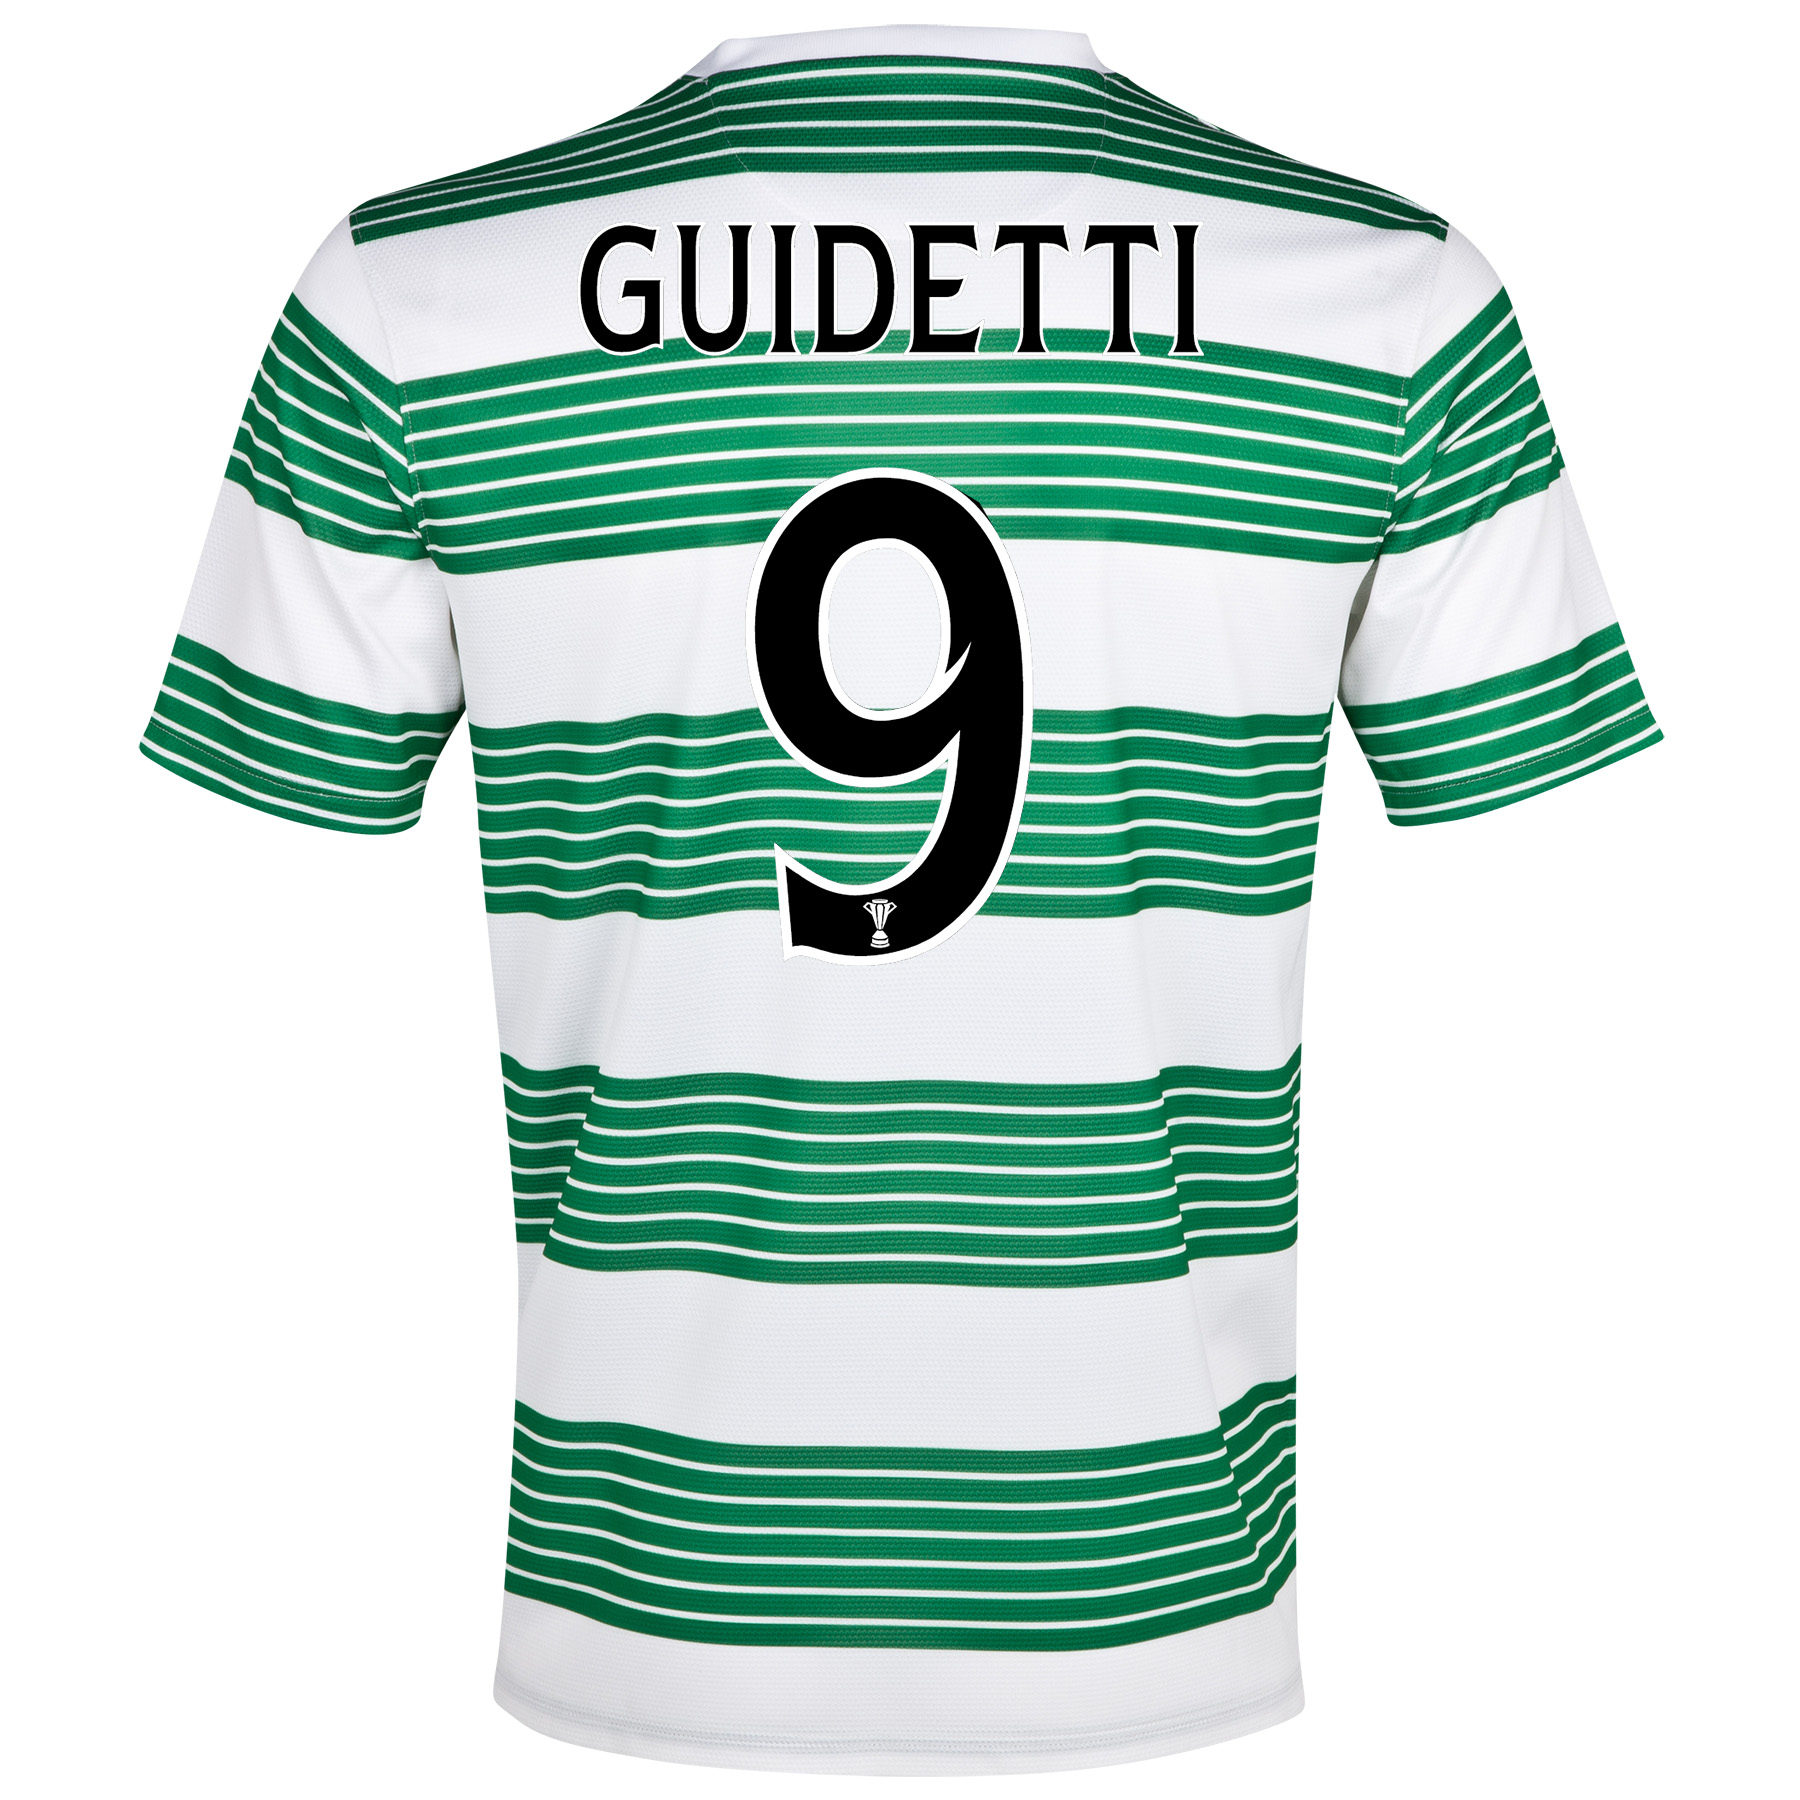 Celtic Home Shirt 2013/15- Unsponsored with Guidetti 9 printing